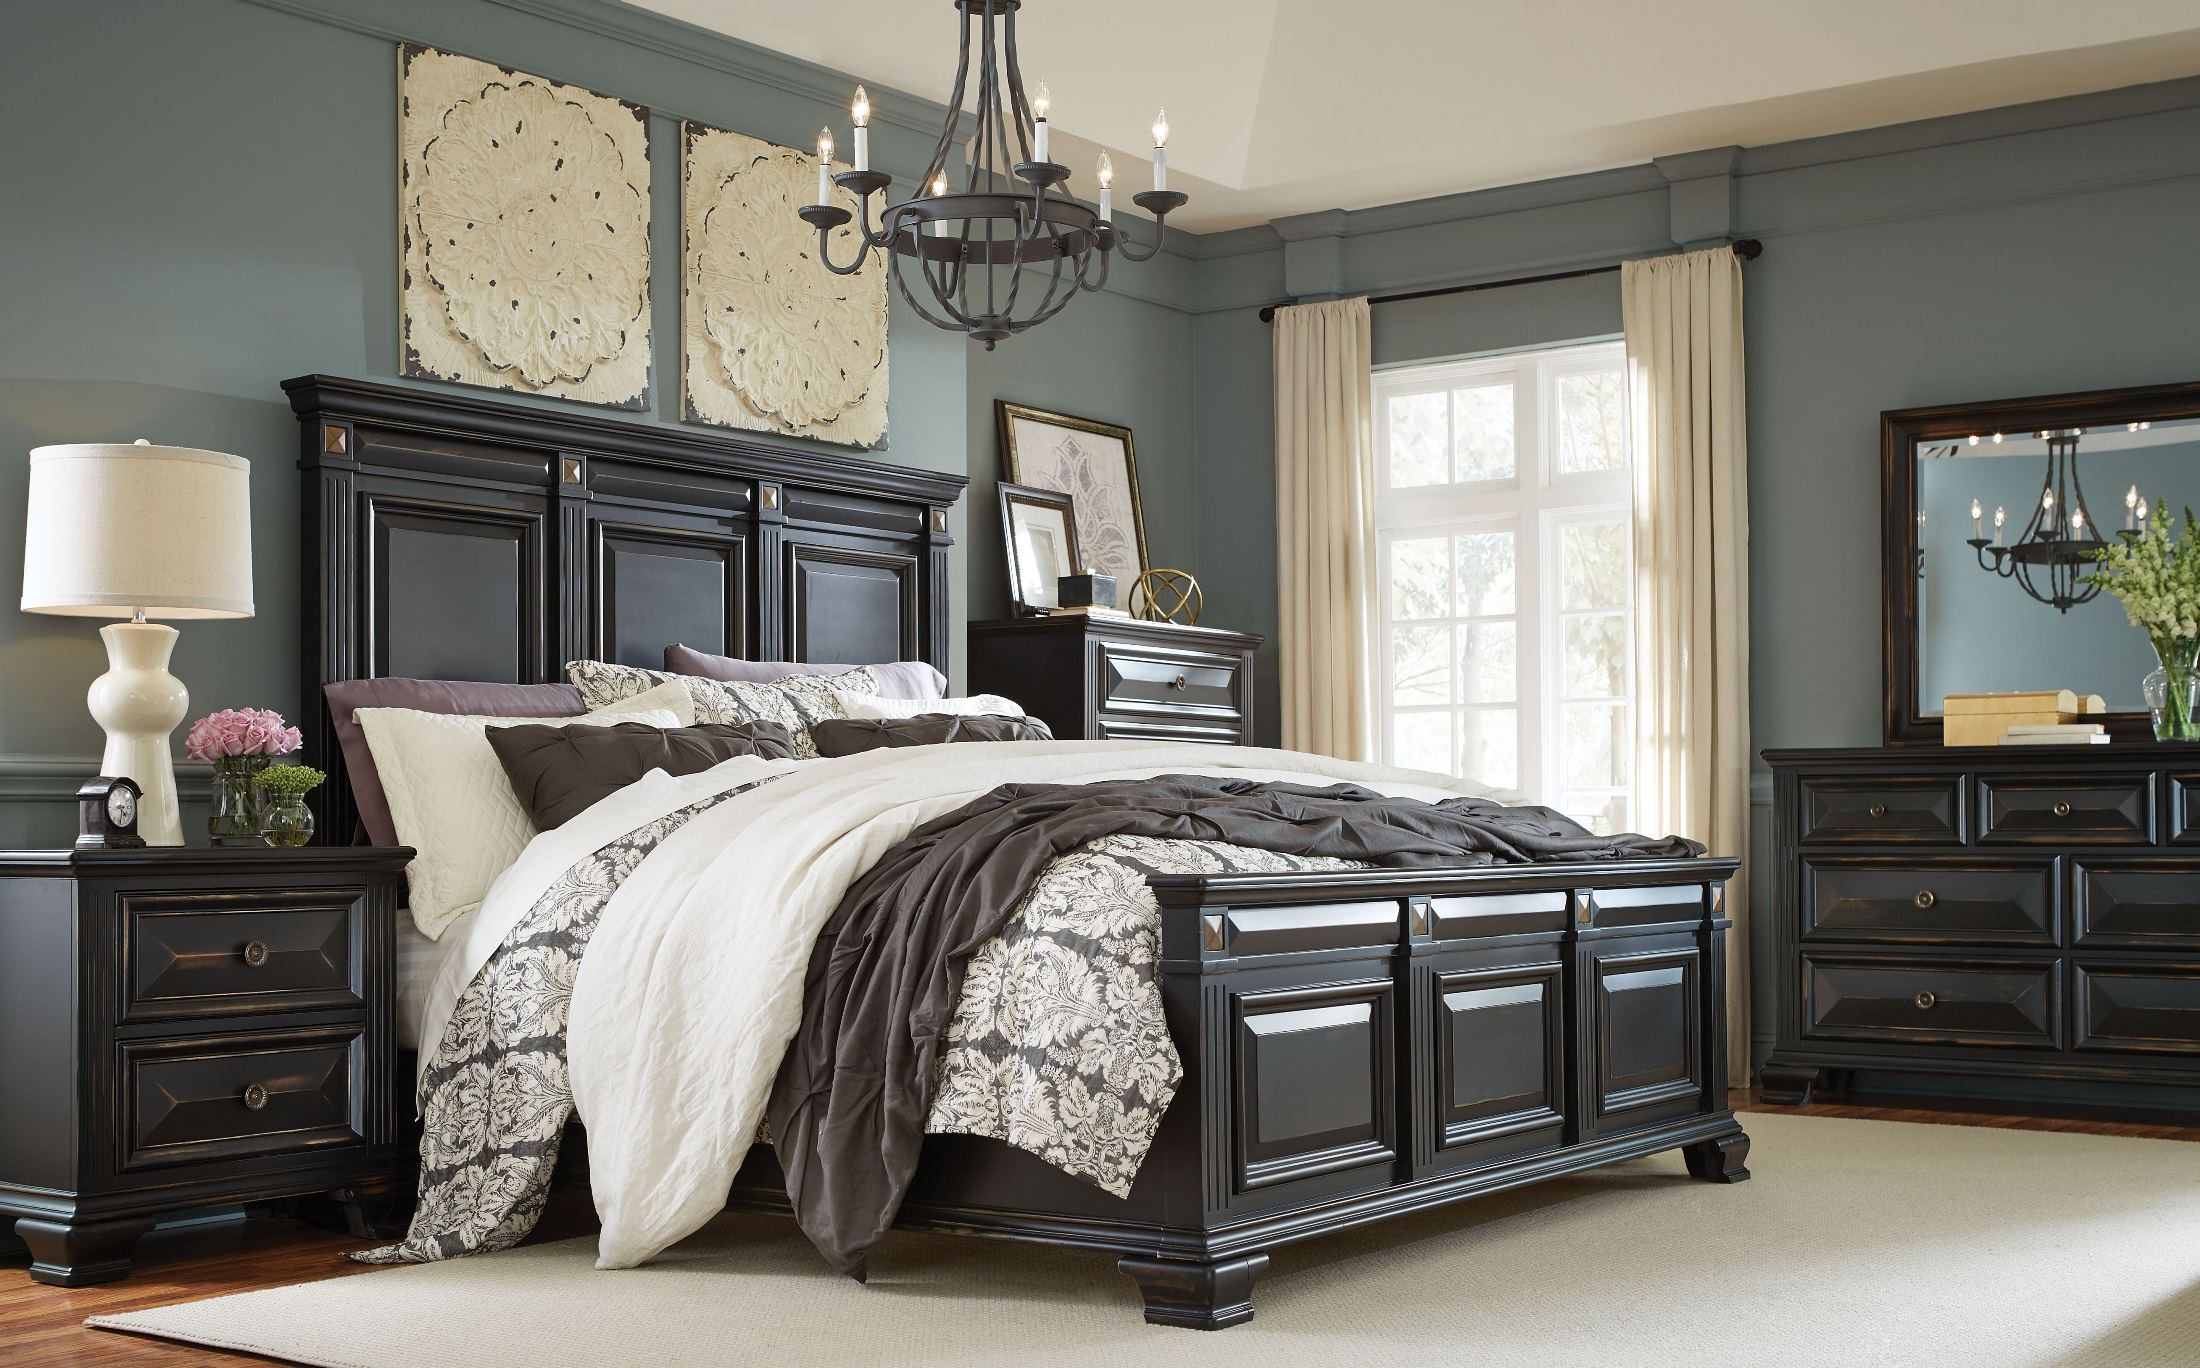 Black White Bedroom Furniture: Passages Vintage Black Panel Bedroom Set From Standard